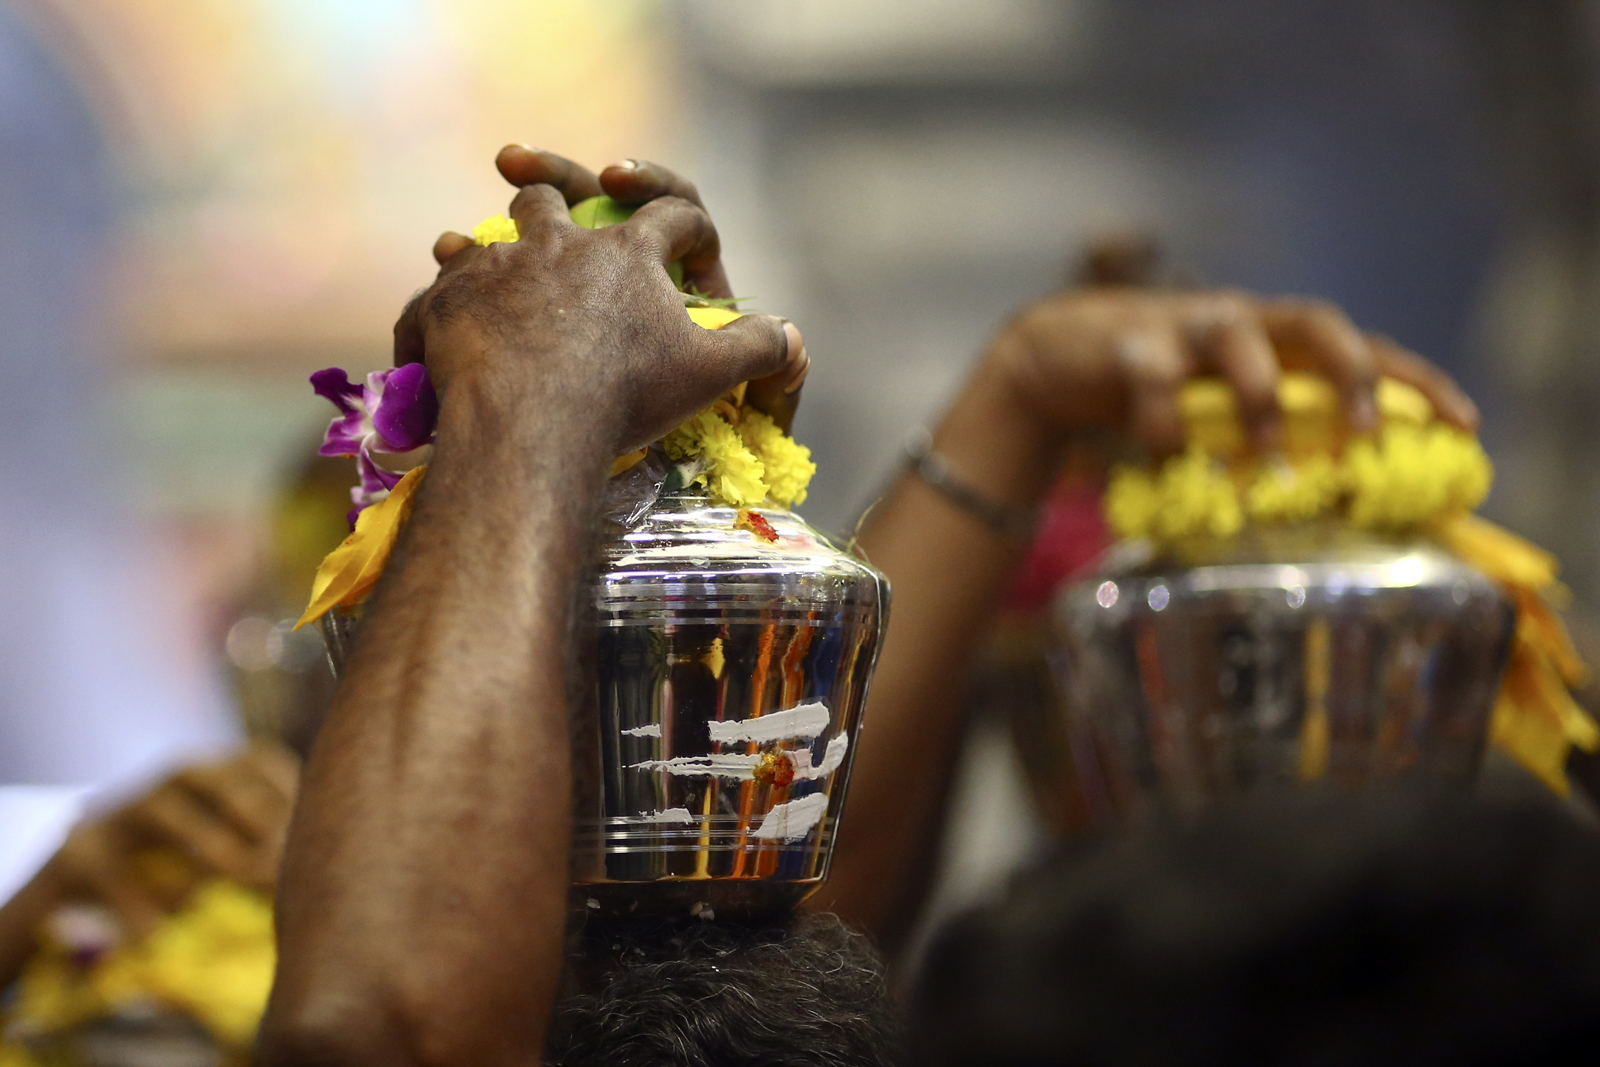 Devotees carry milk pots during the Thaipusam festival at the Sri Srinivasa Perumal Temple on February 9, 2017 in Singapore.